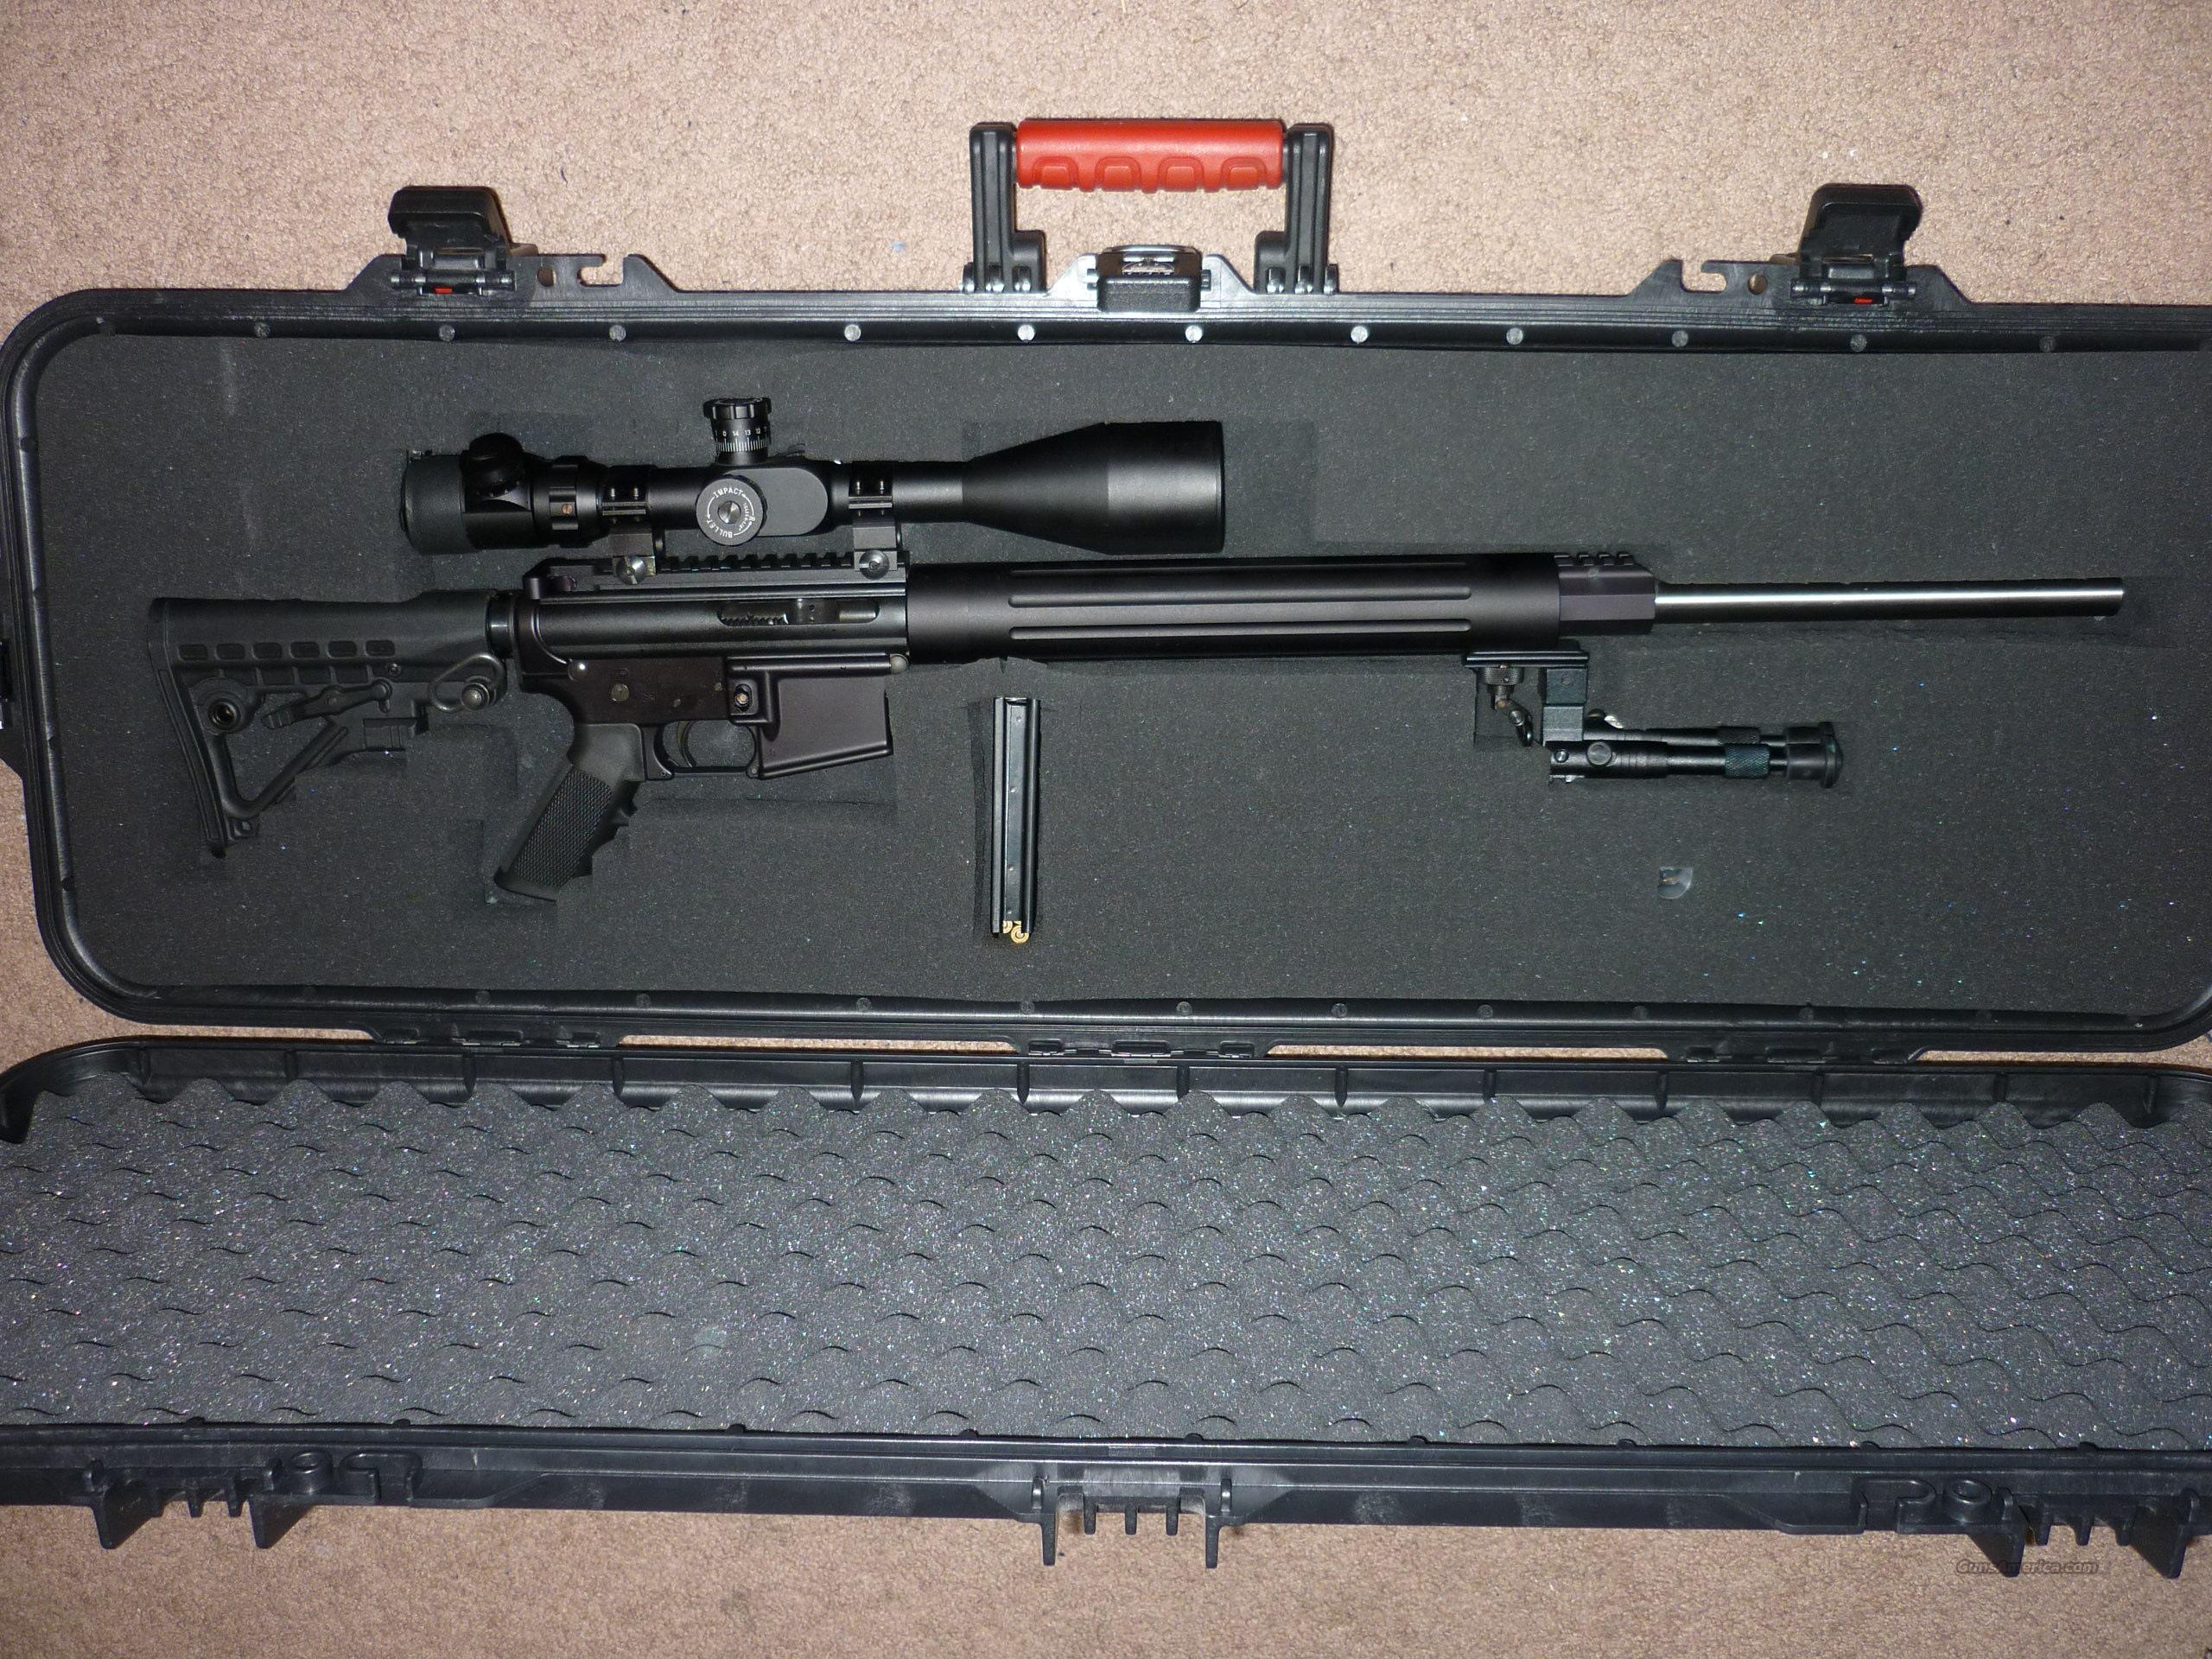 Used Hummers For Sale >> AR-15 based Sniper Rifle for sale